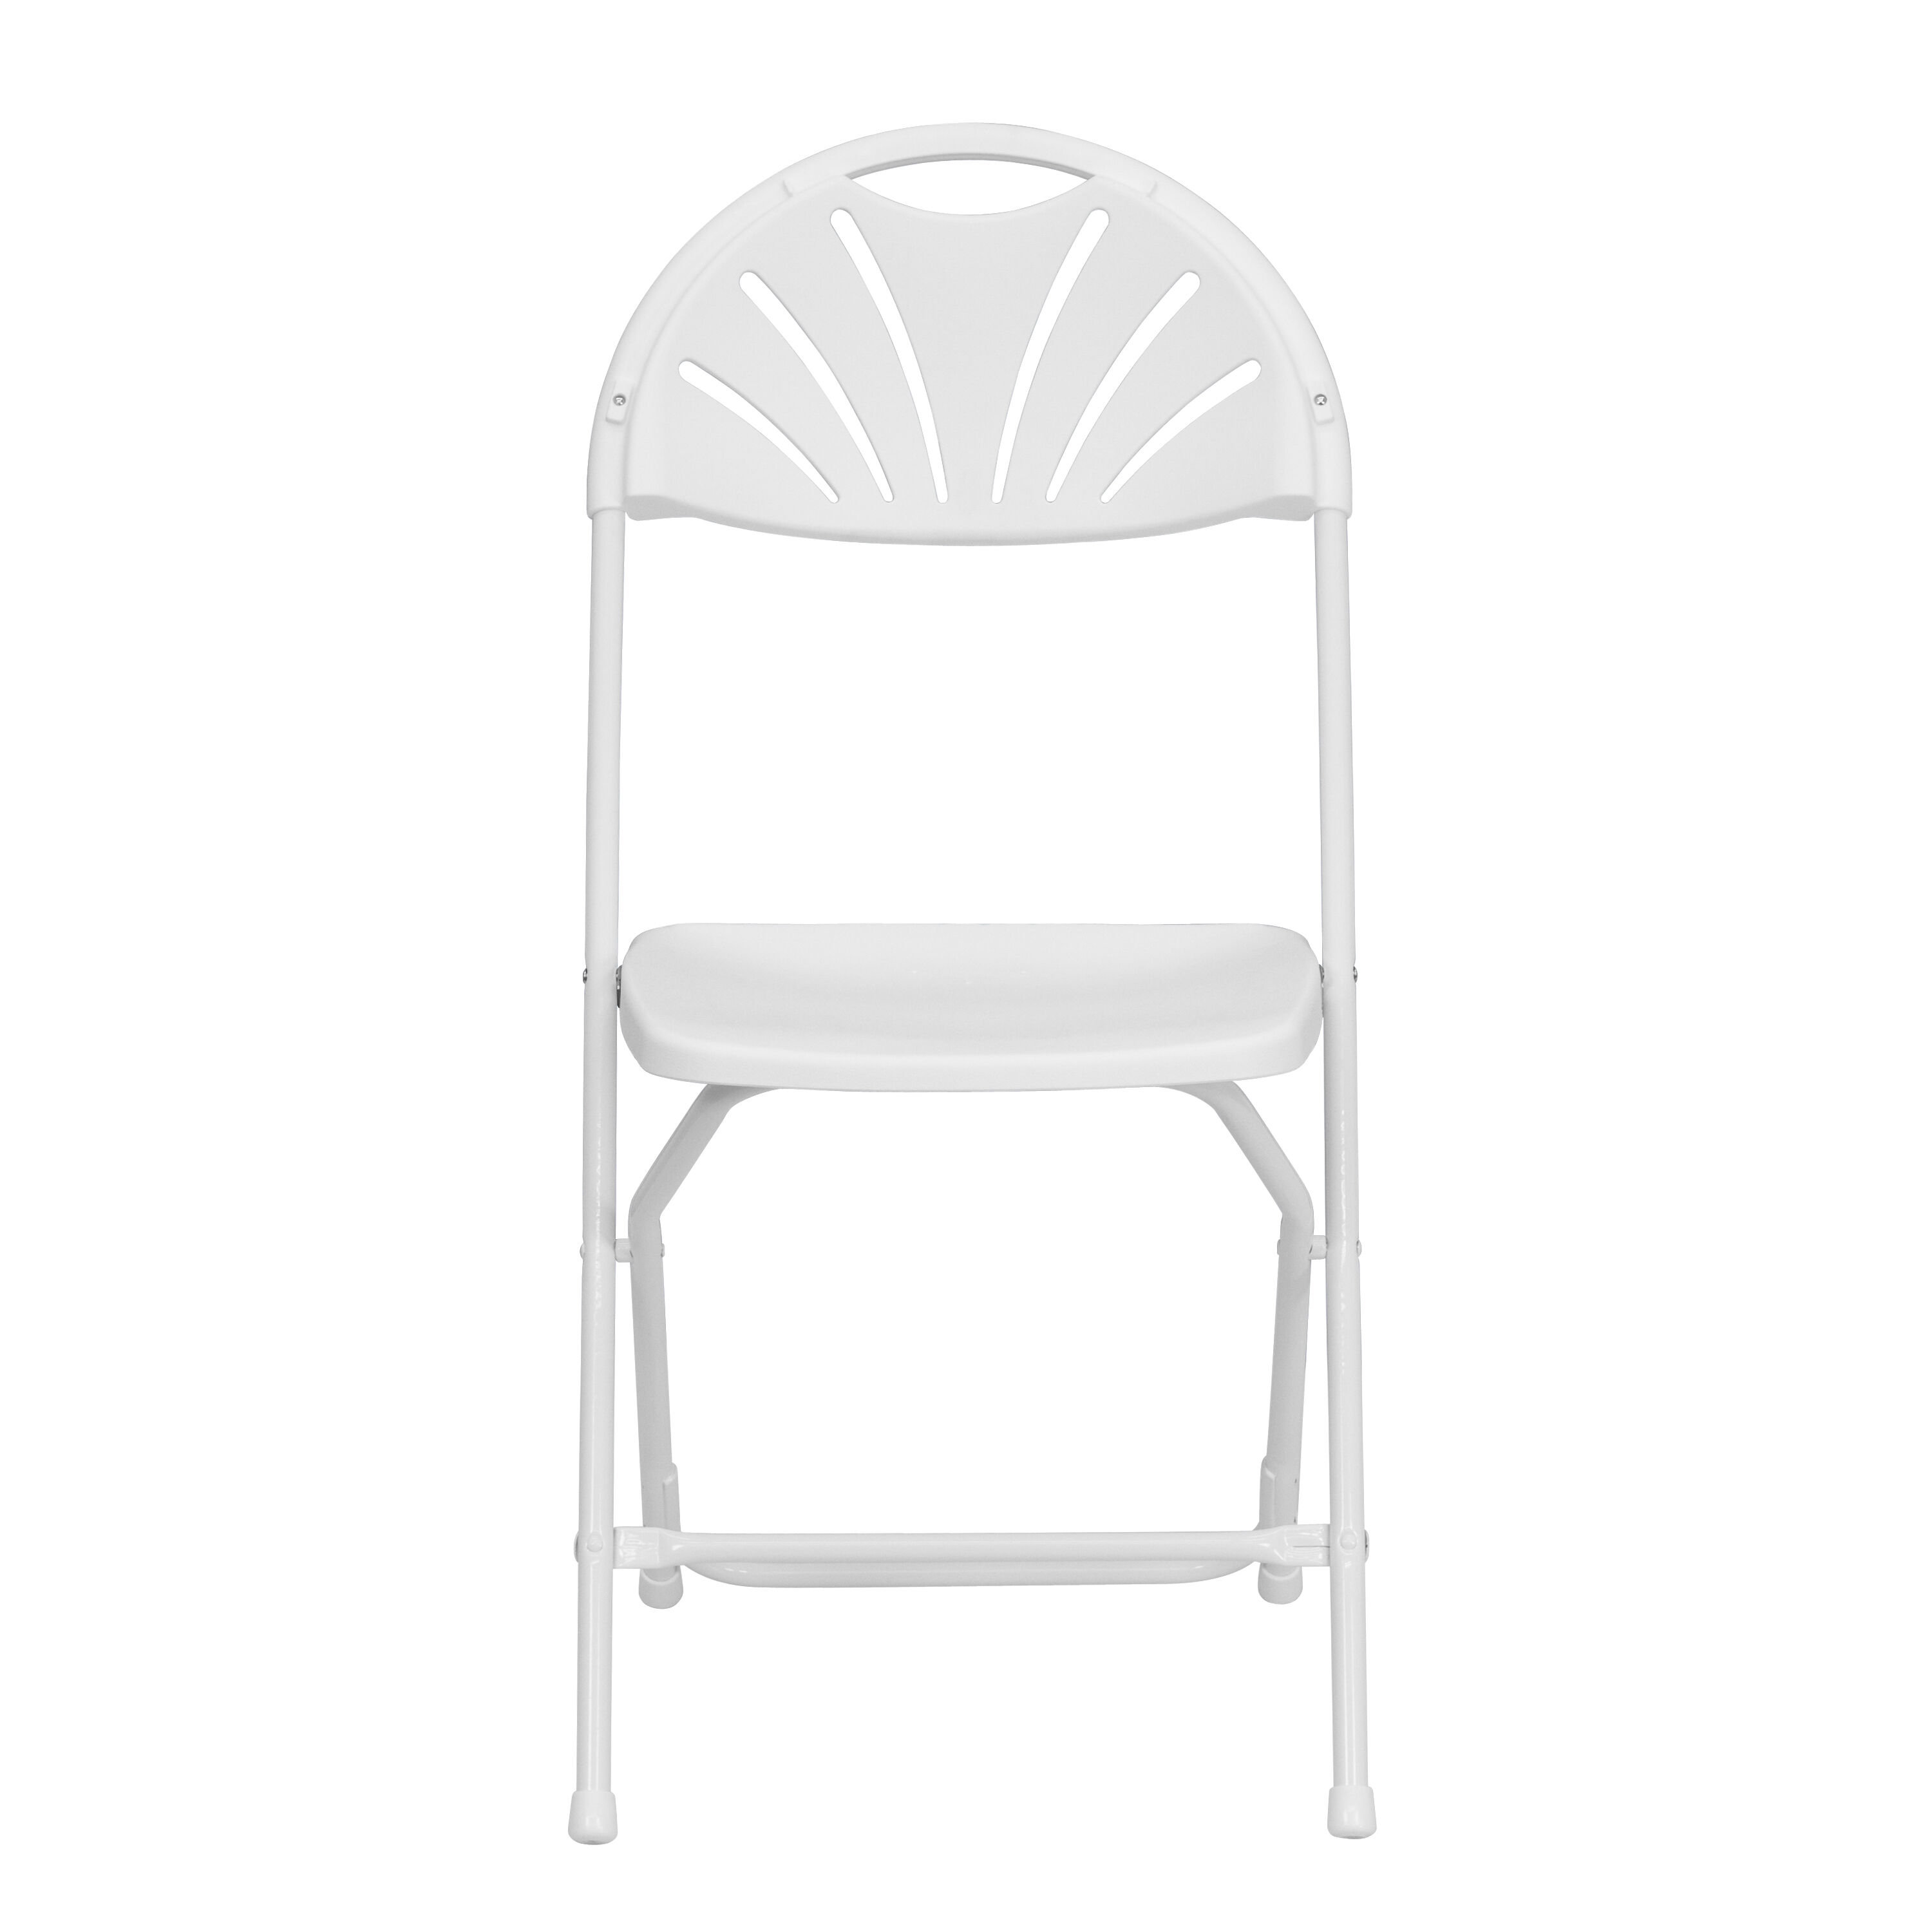 folding chair dolly 50 capacity hickory accessories white plastic le l 4 gg bizchair